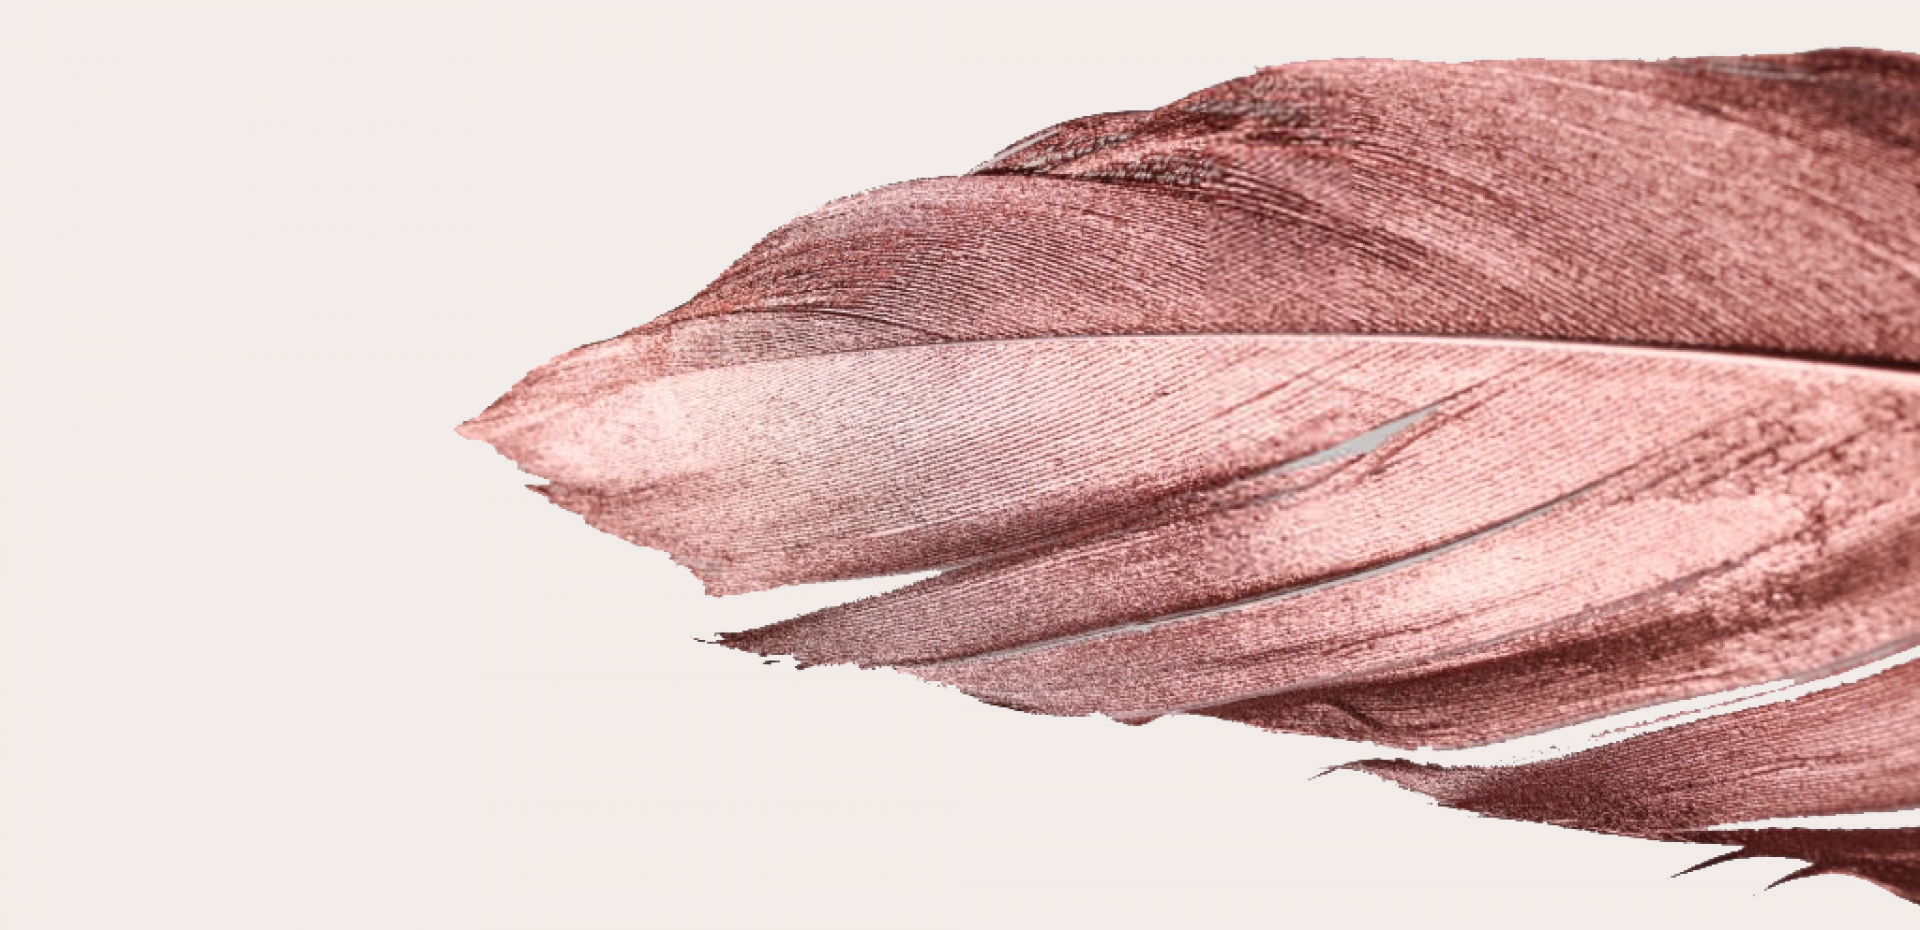 https://www.toyacreatives.com/wp-content/uploads/2019/10/cropped-feather-copy-1.png